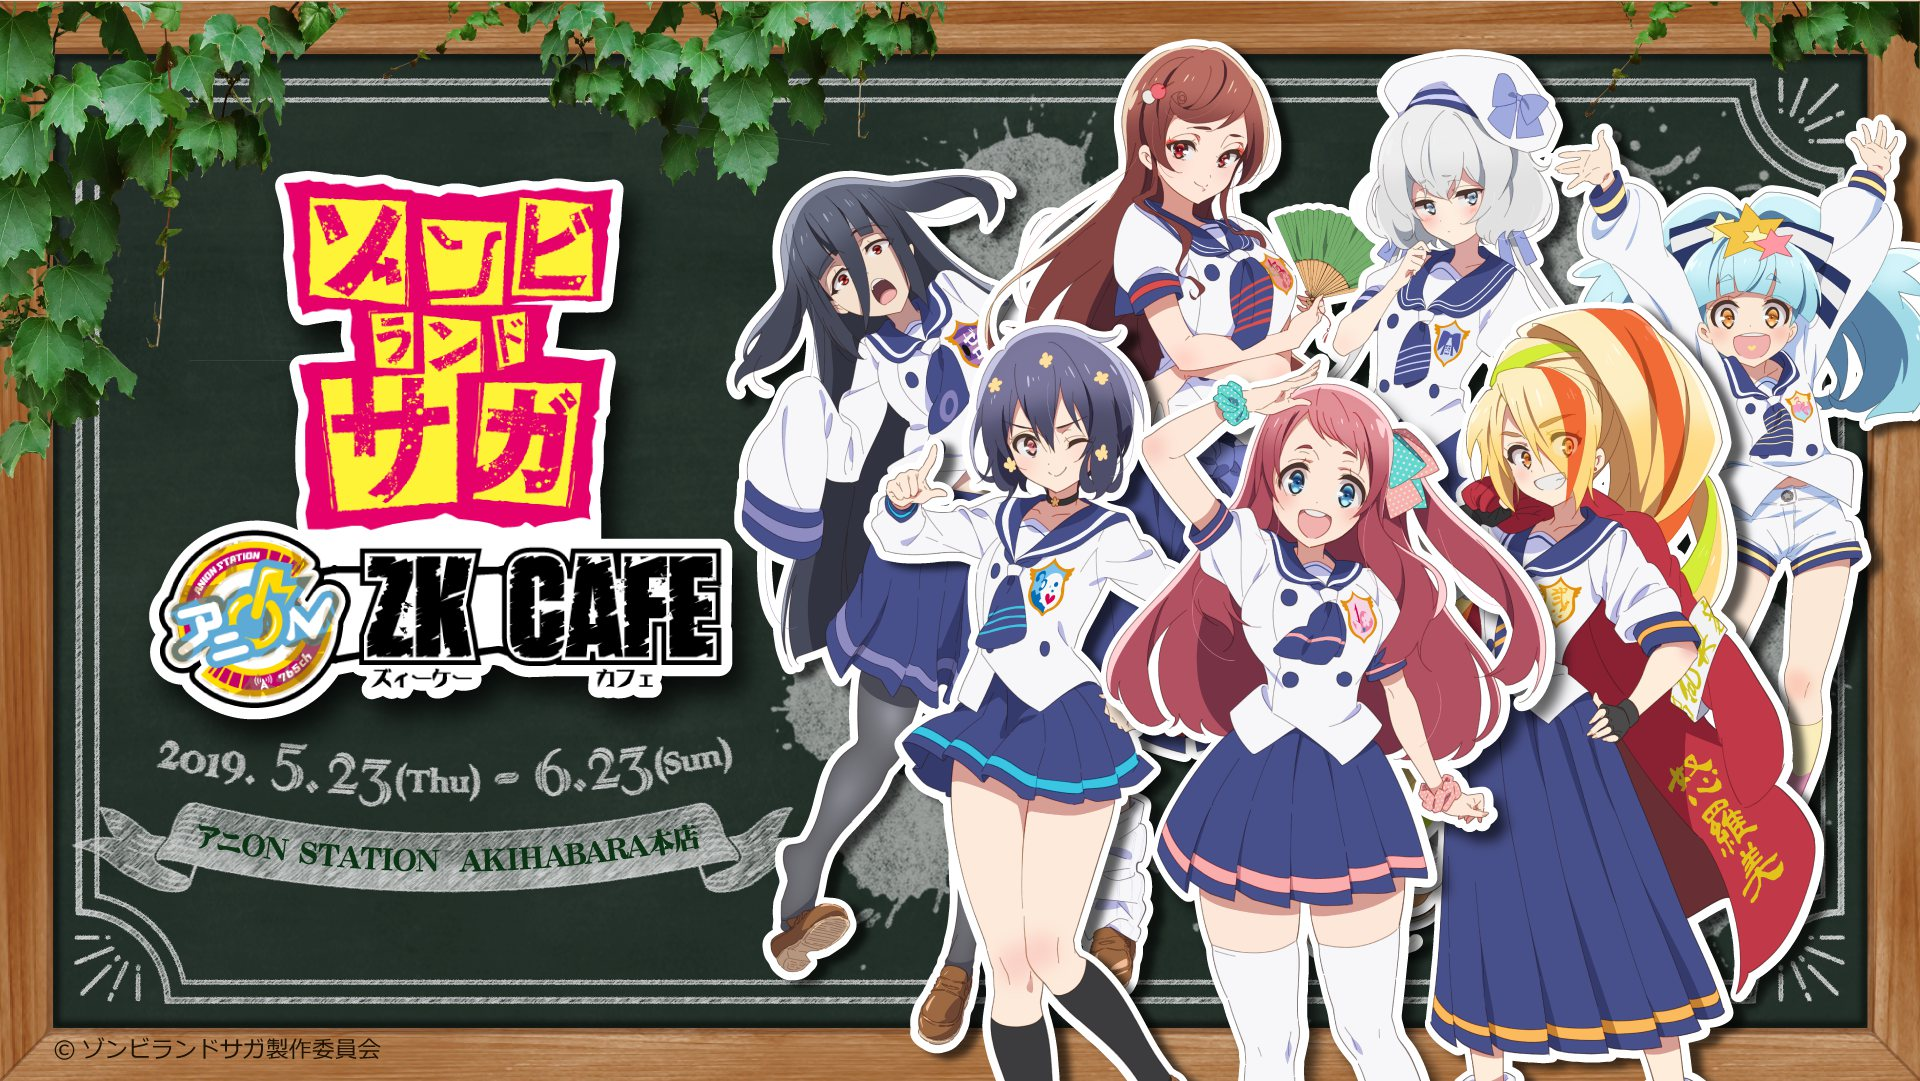 """""""Zomber Land Saga ZK CAFE (Zeek Cafe)"""" Open from May 23 (Thu)"""